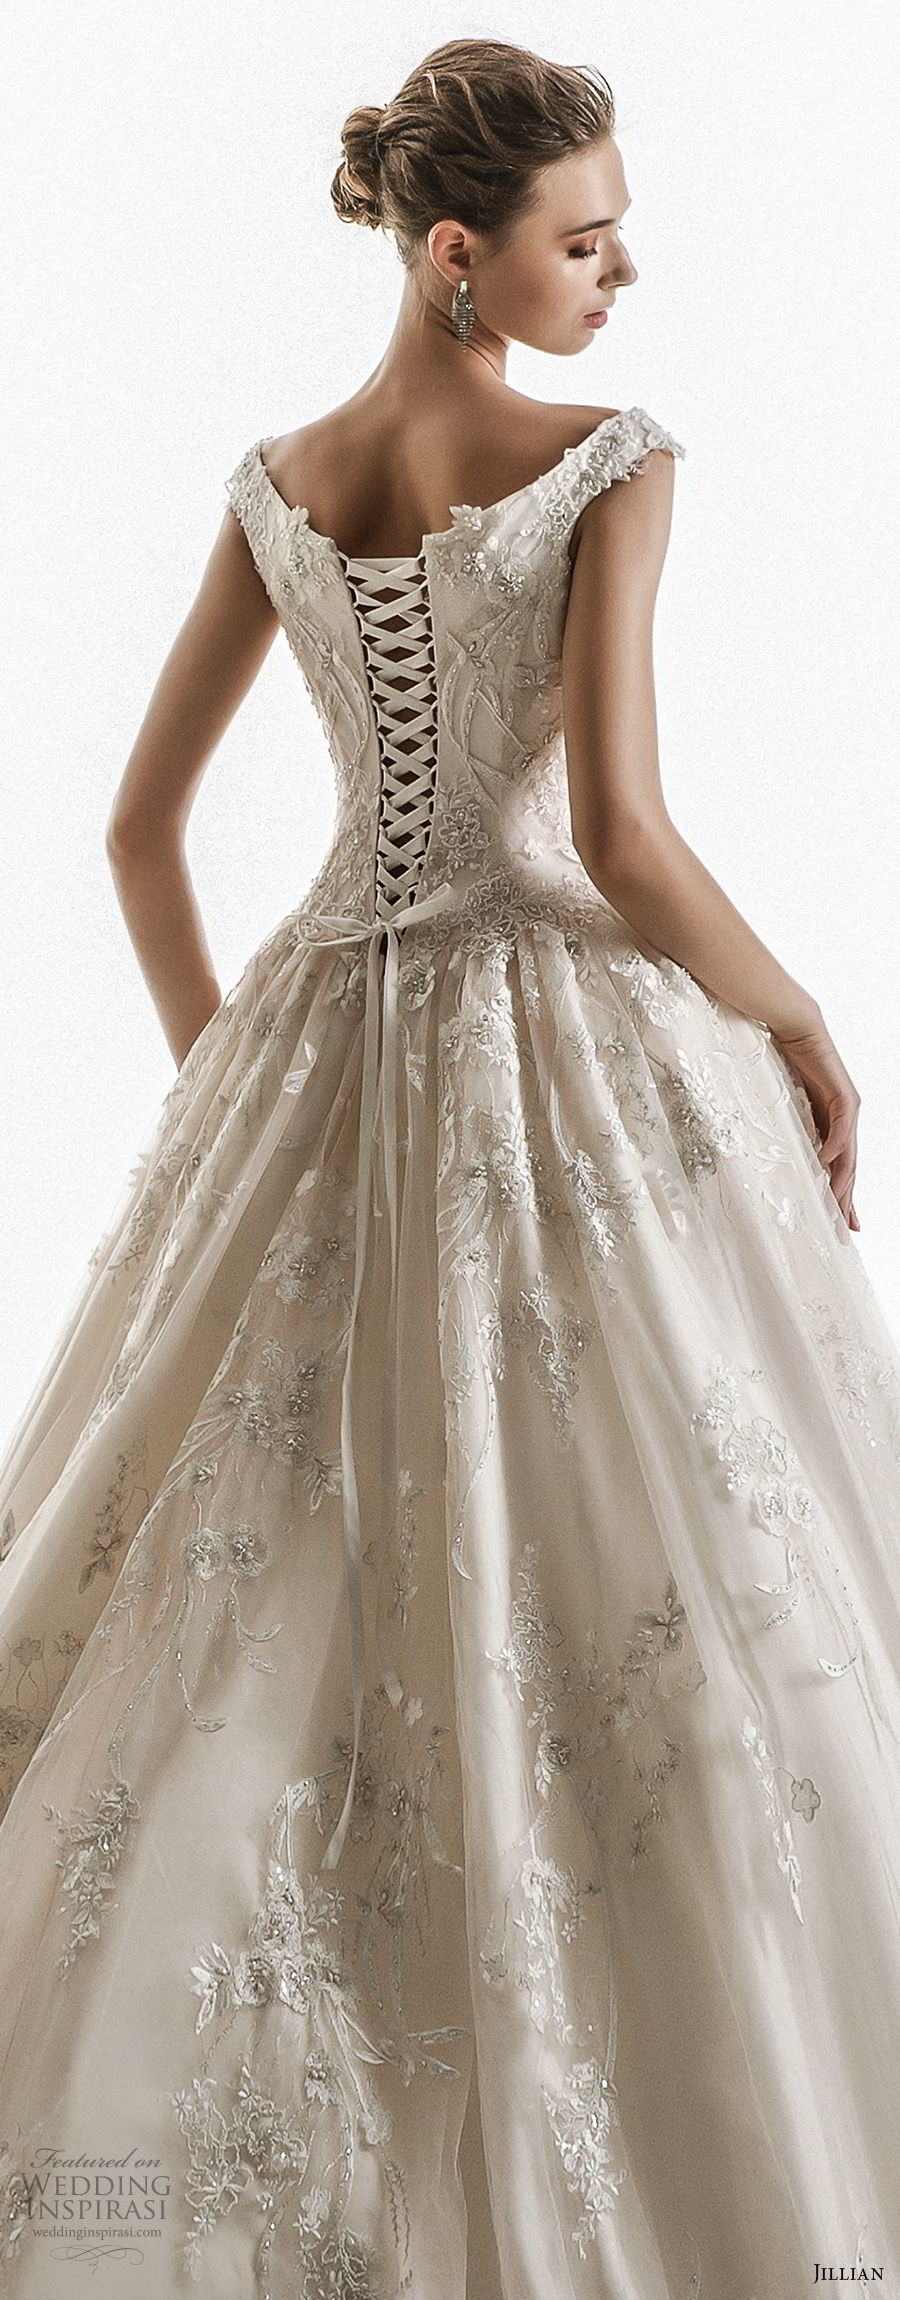 Jillian 2018 wedding dresses wedding inspirasi for Princess corset wedding dresses